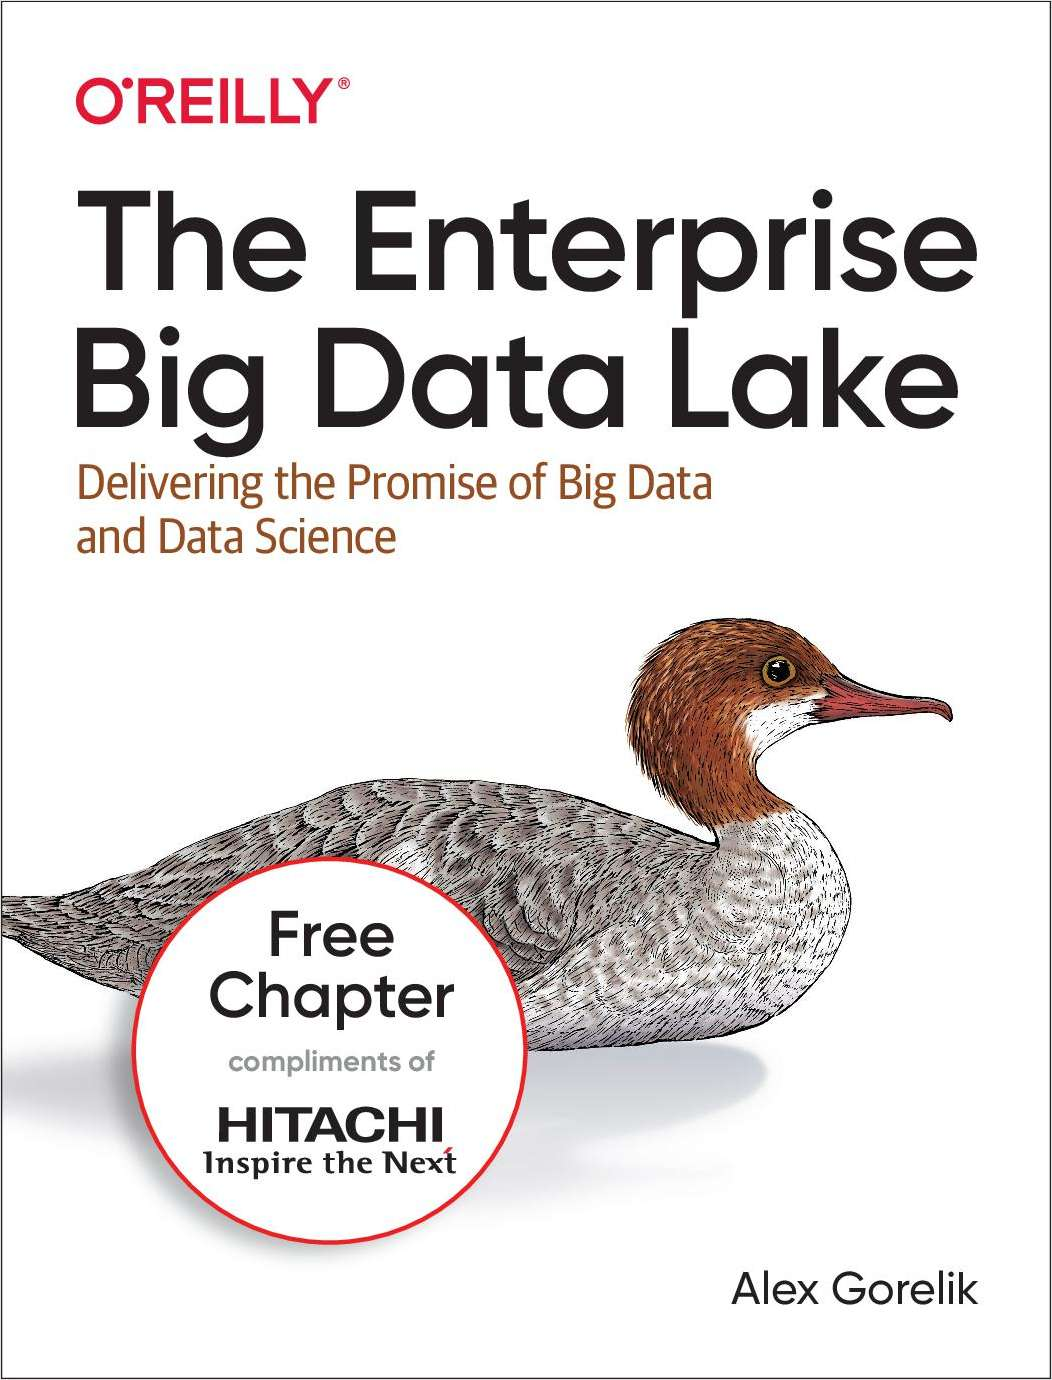 The Enterprise Big Data Lake